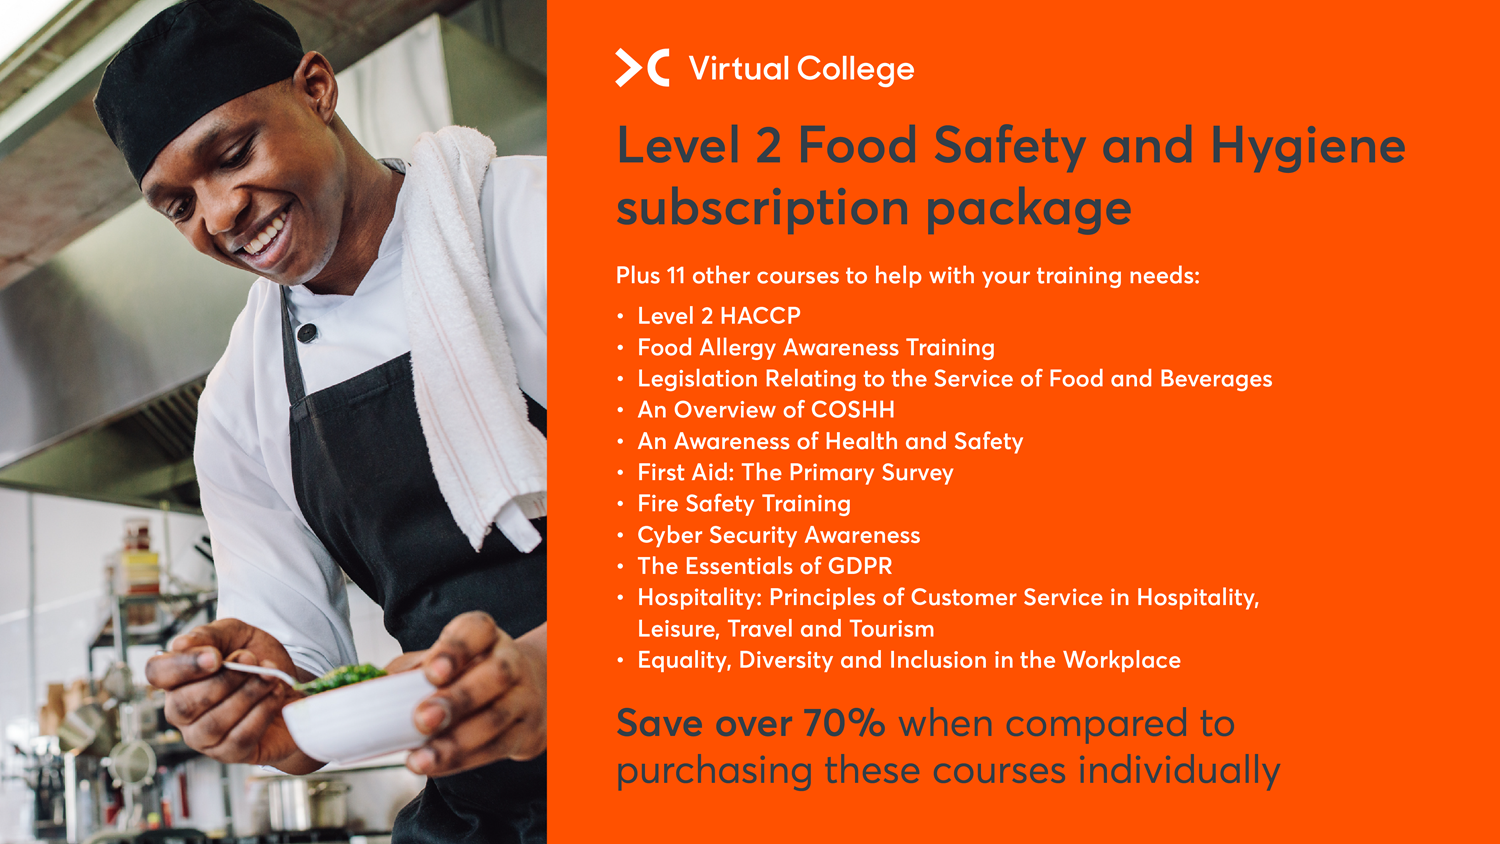 Level 2 Food Safety & Hygiene Course Package